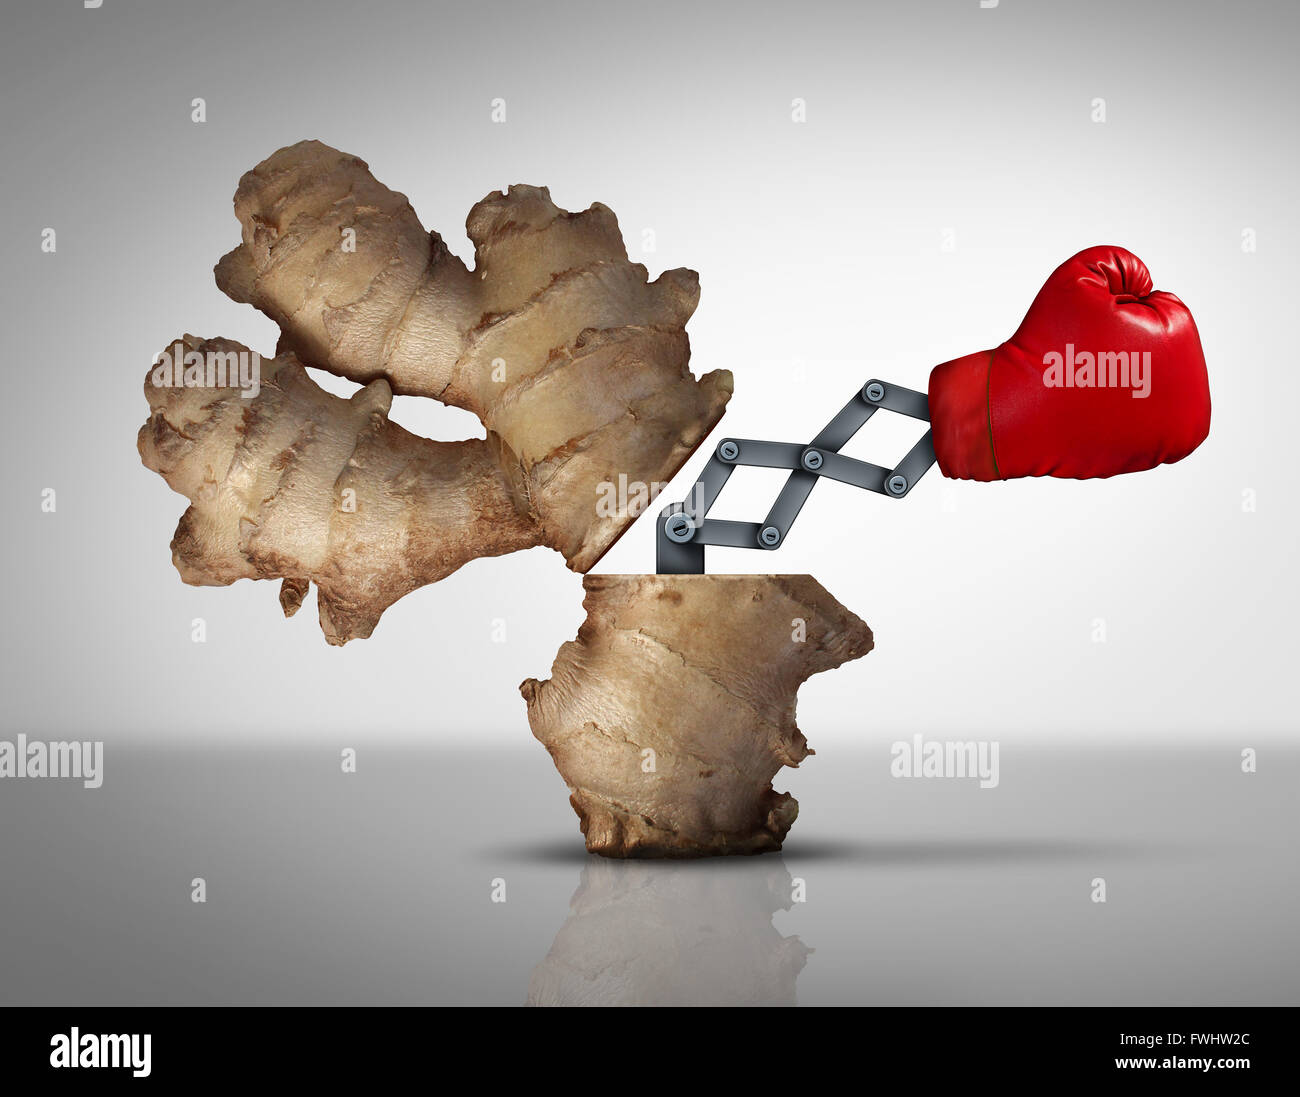 Ginger medicine concept as a natural herbal medicinal root opened with a boxing glove icon emerging with a 3D illustration - Stock Image